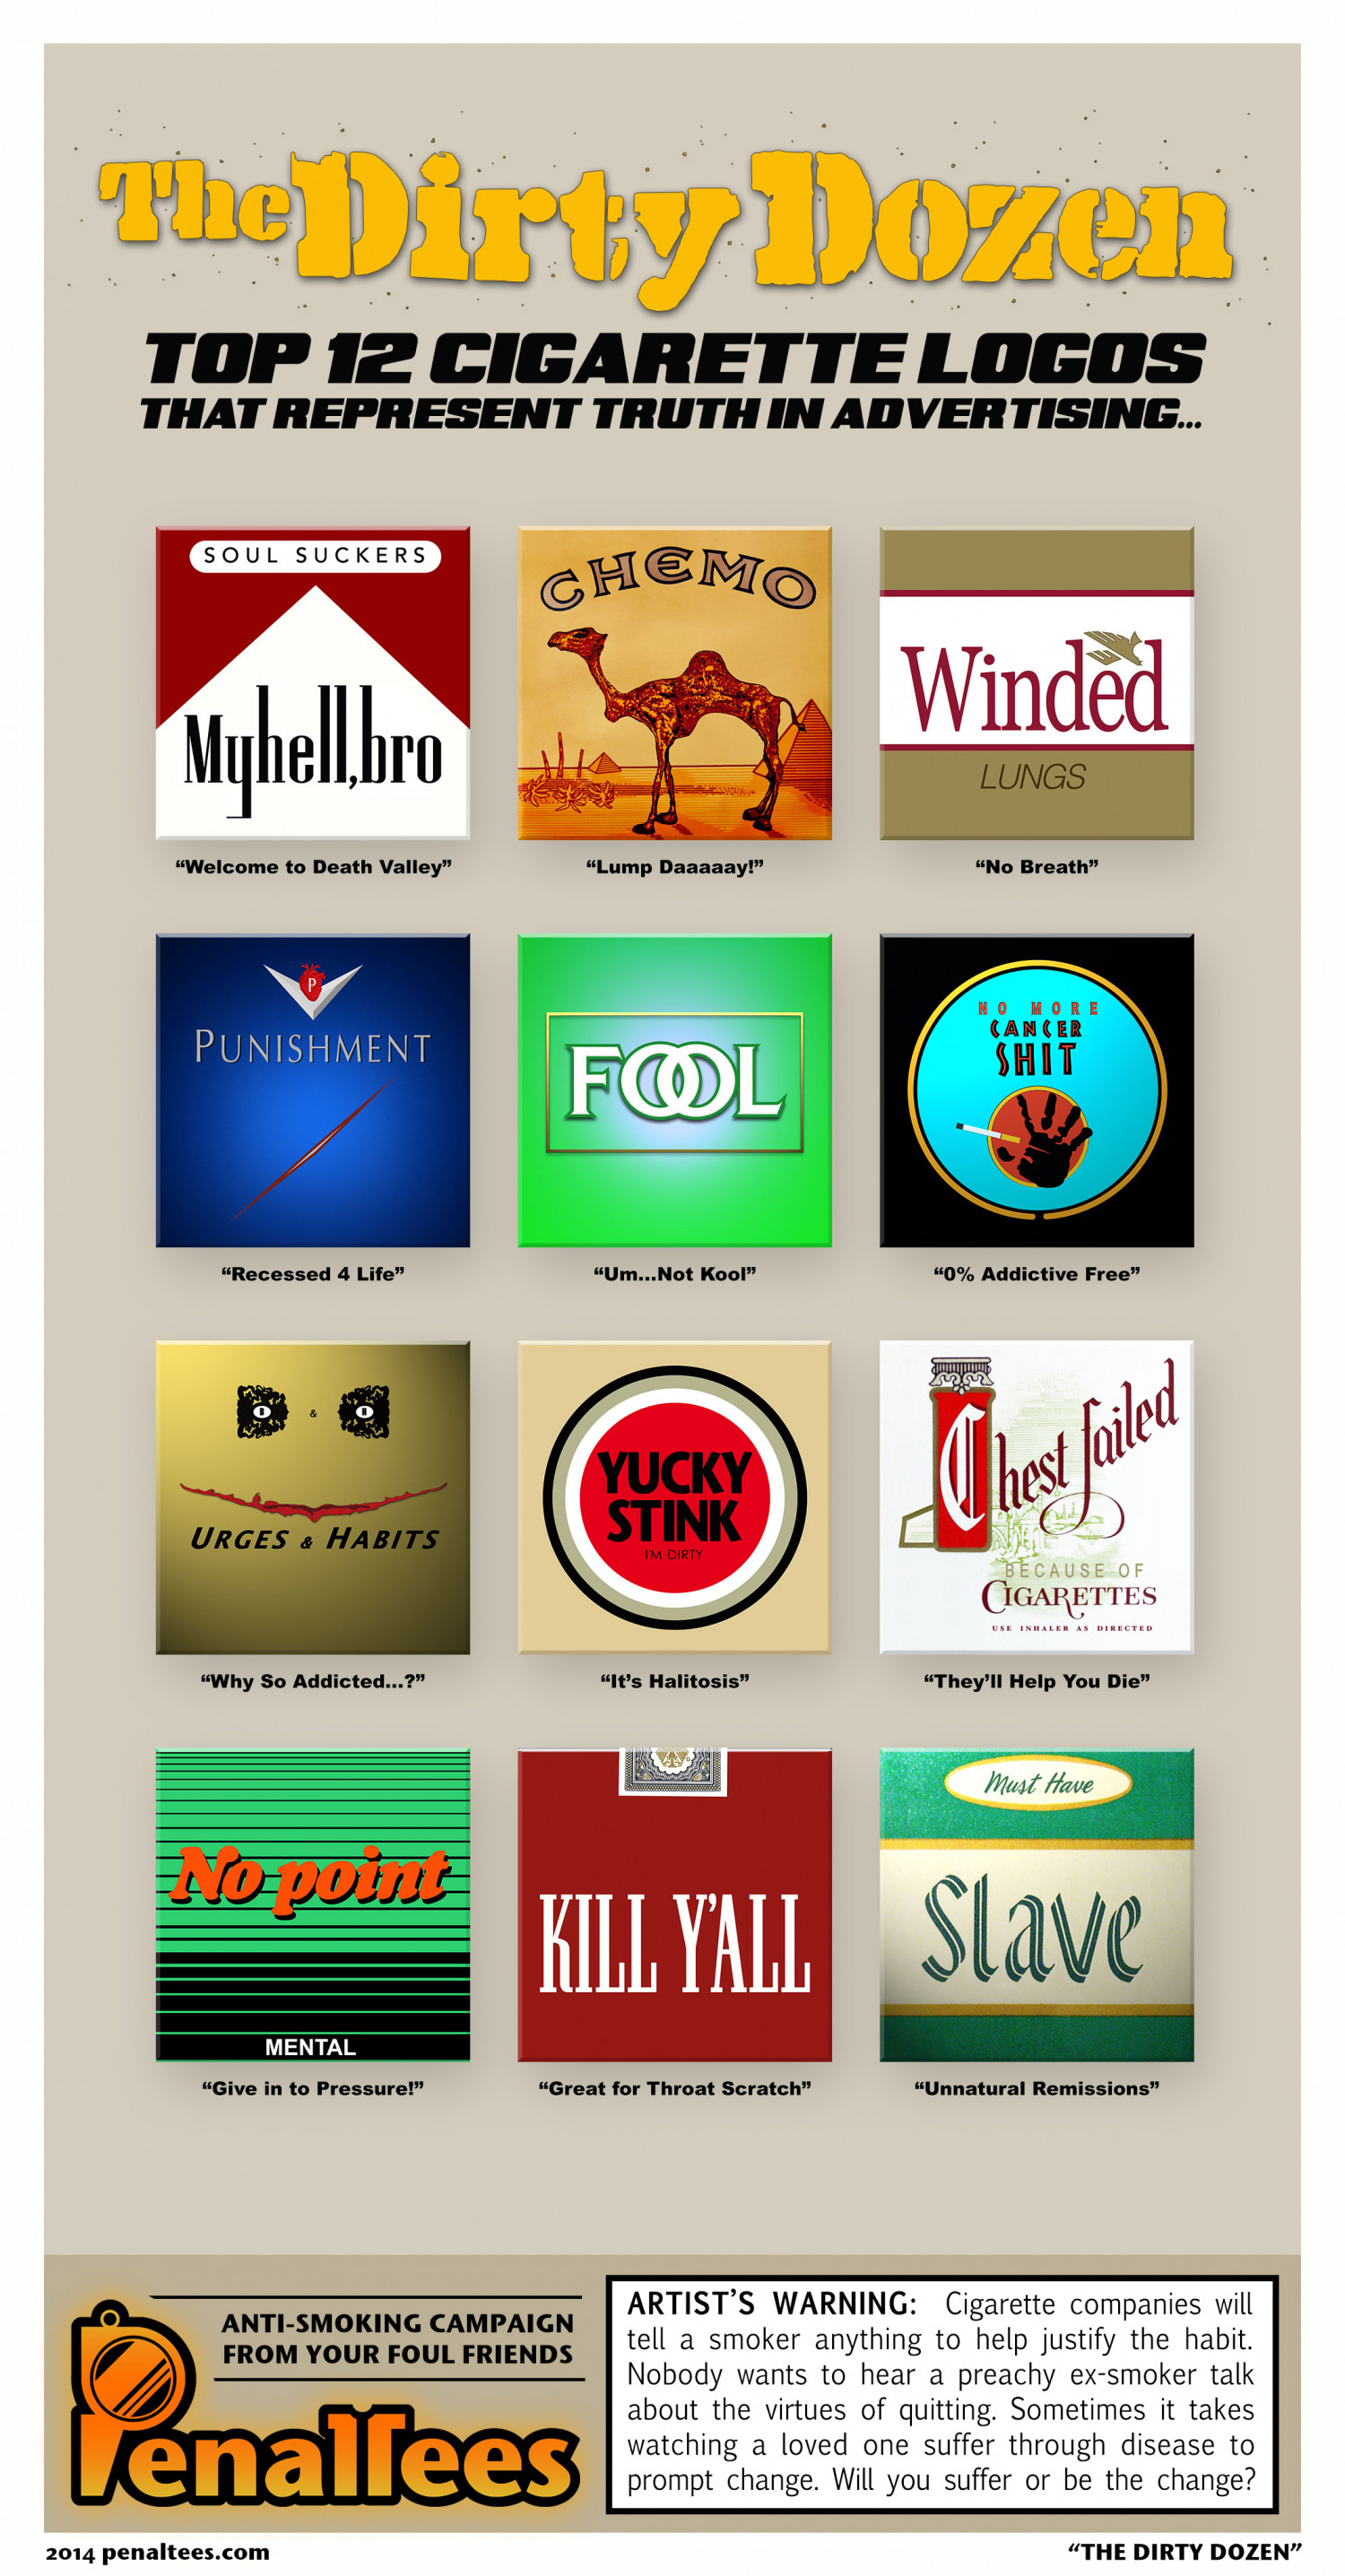 The Dirty Dozen: Top 12 Cigarette Logos that Represent Truth in Advertising Infographic